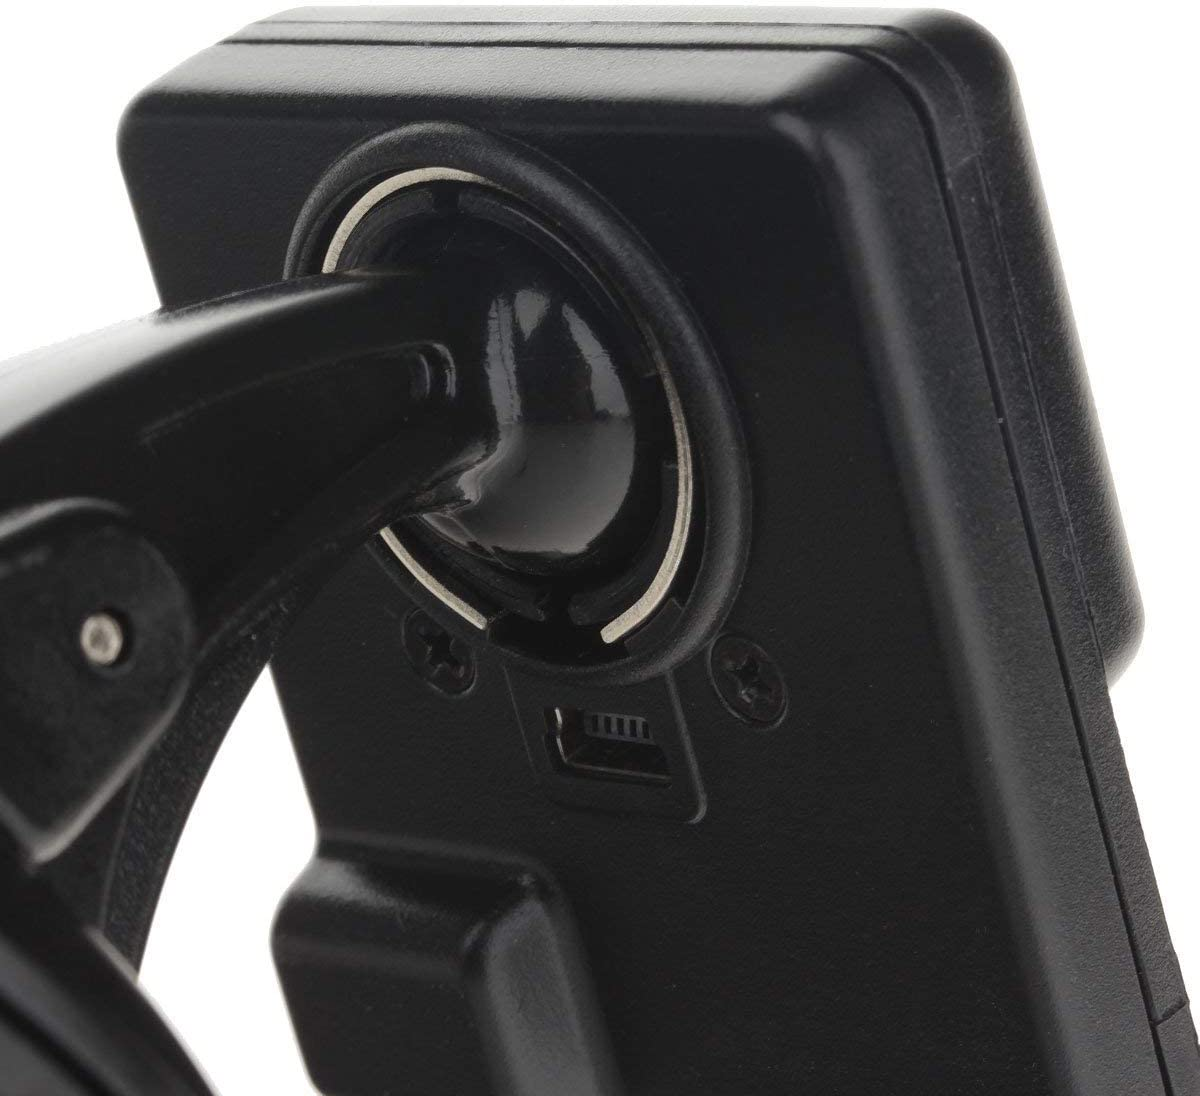 BOROLA Car Suction Cup Mount Holder for Garmin Nuvi 370 360 350 310 300 GPS